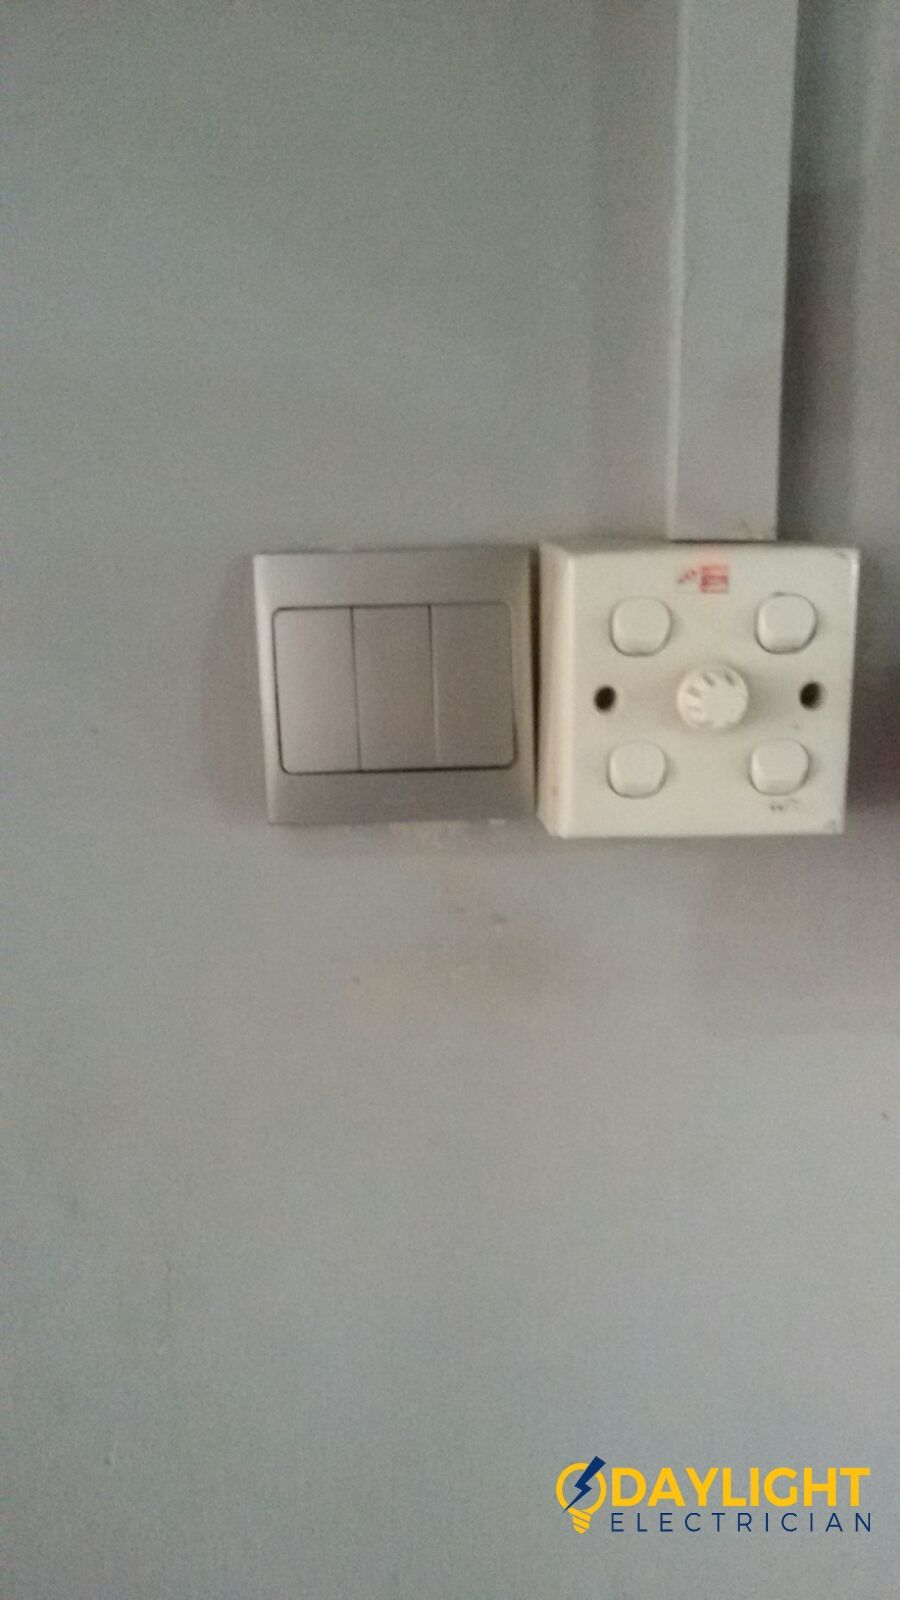 Replace Light Switch Electrician Singapore Bedok HDB